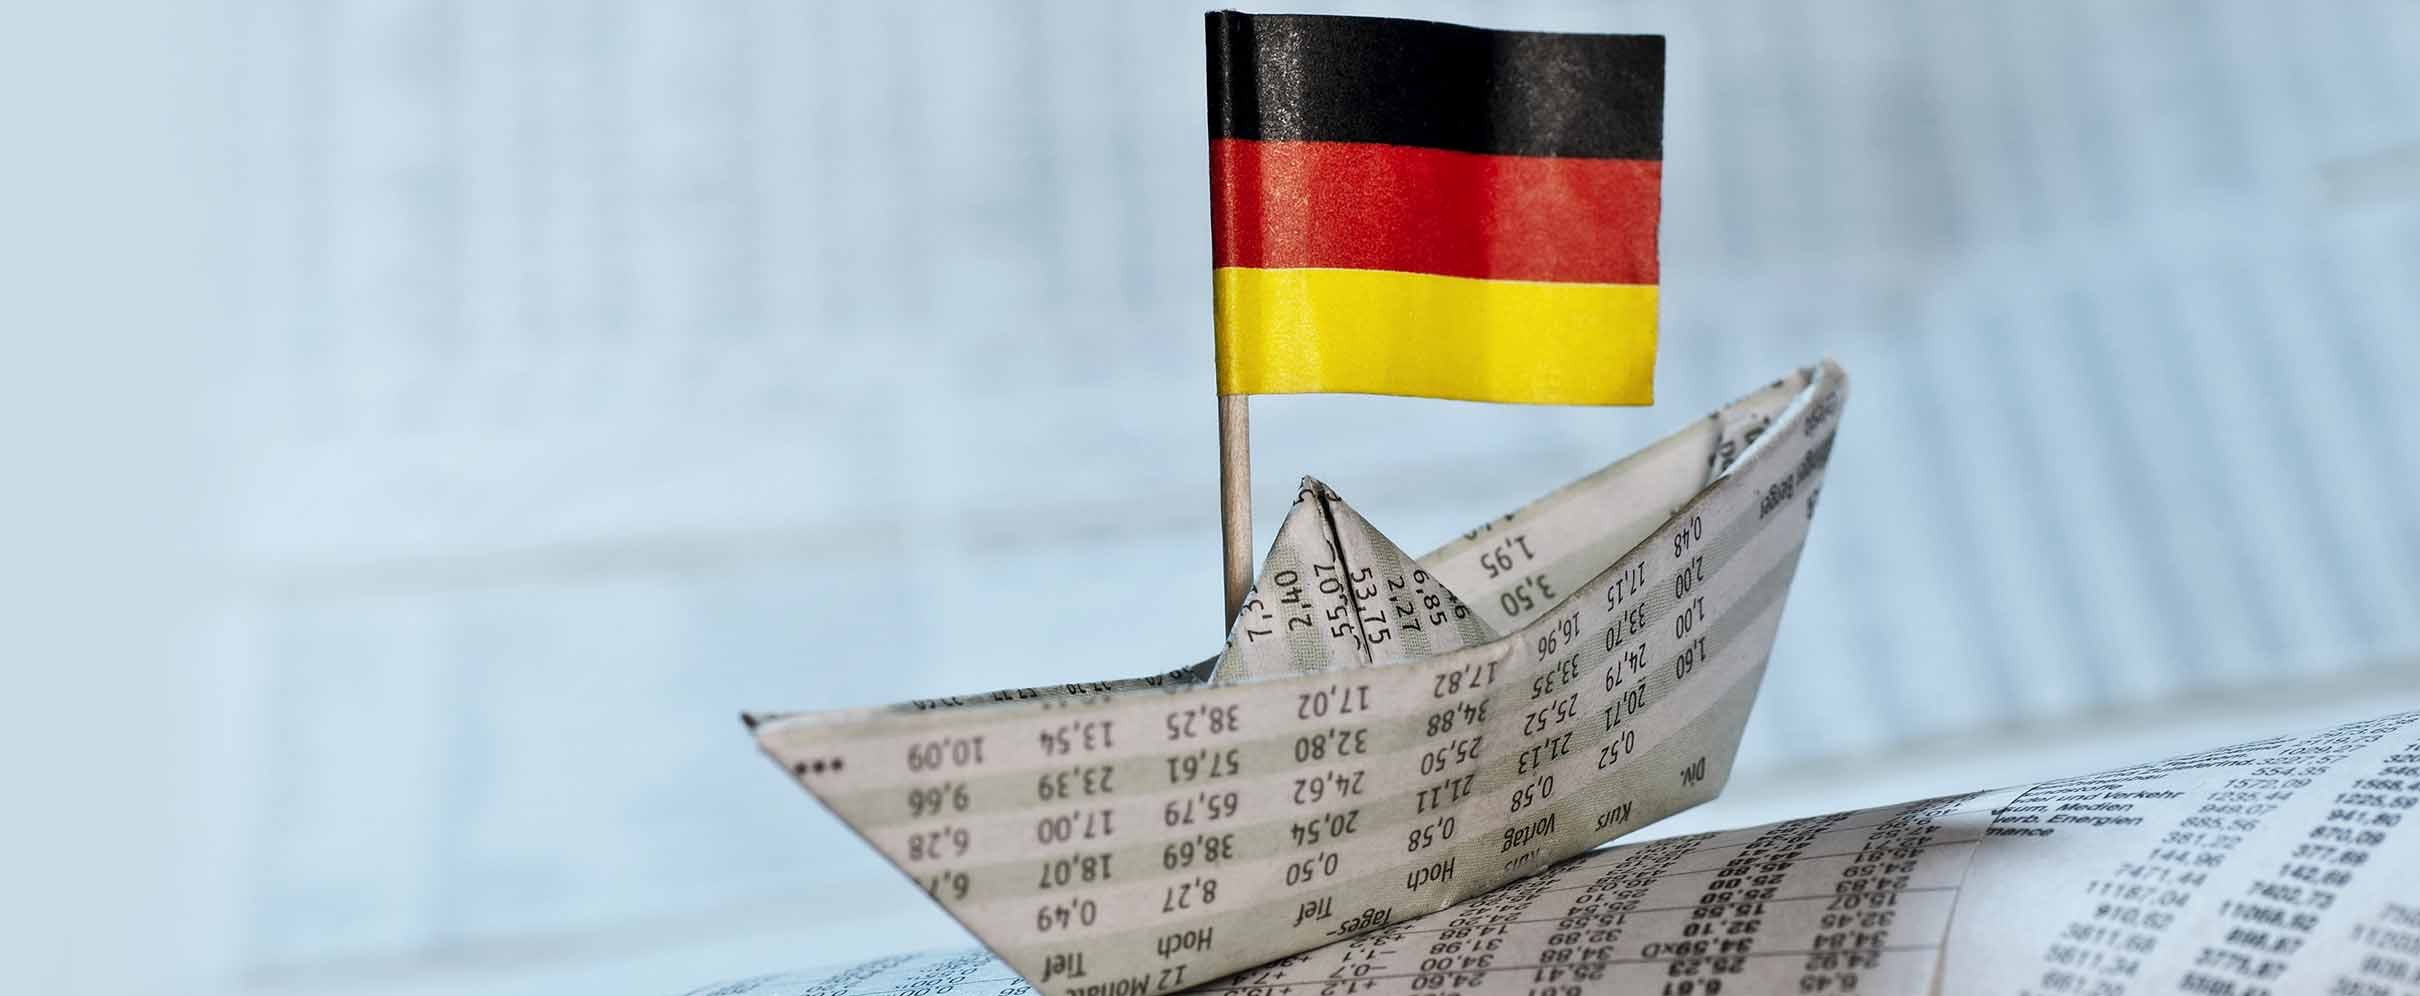 A small paper boat with the German flag.